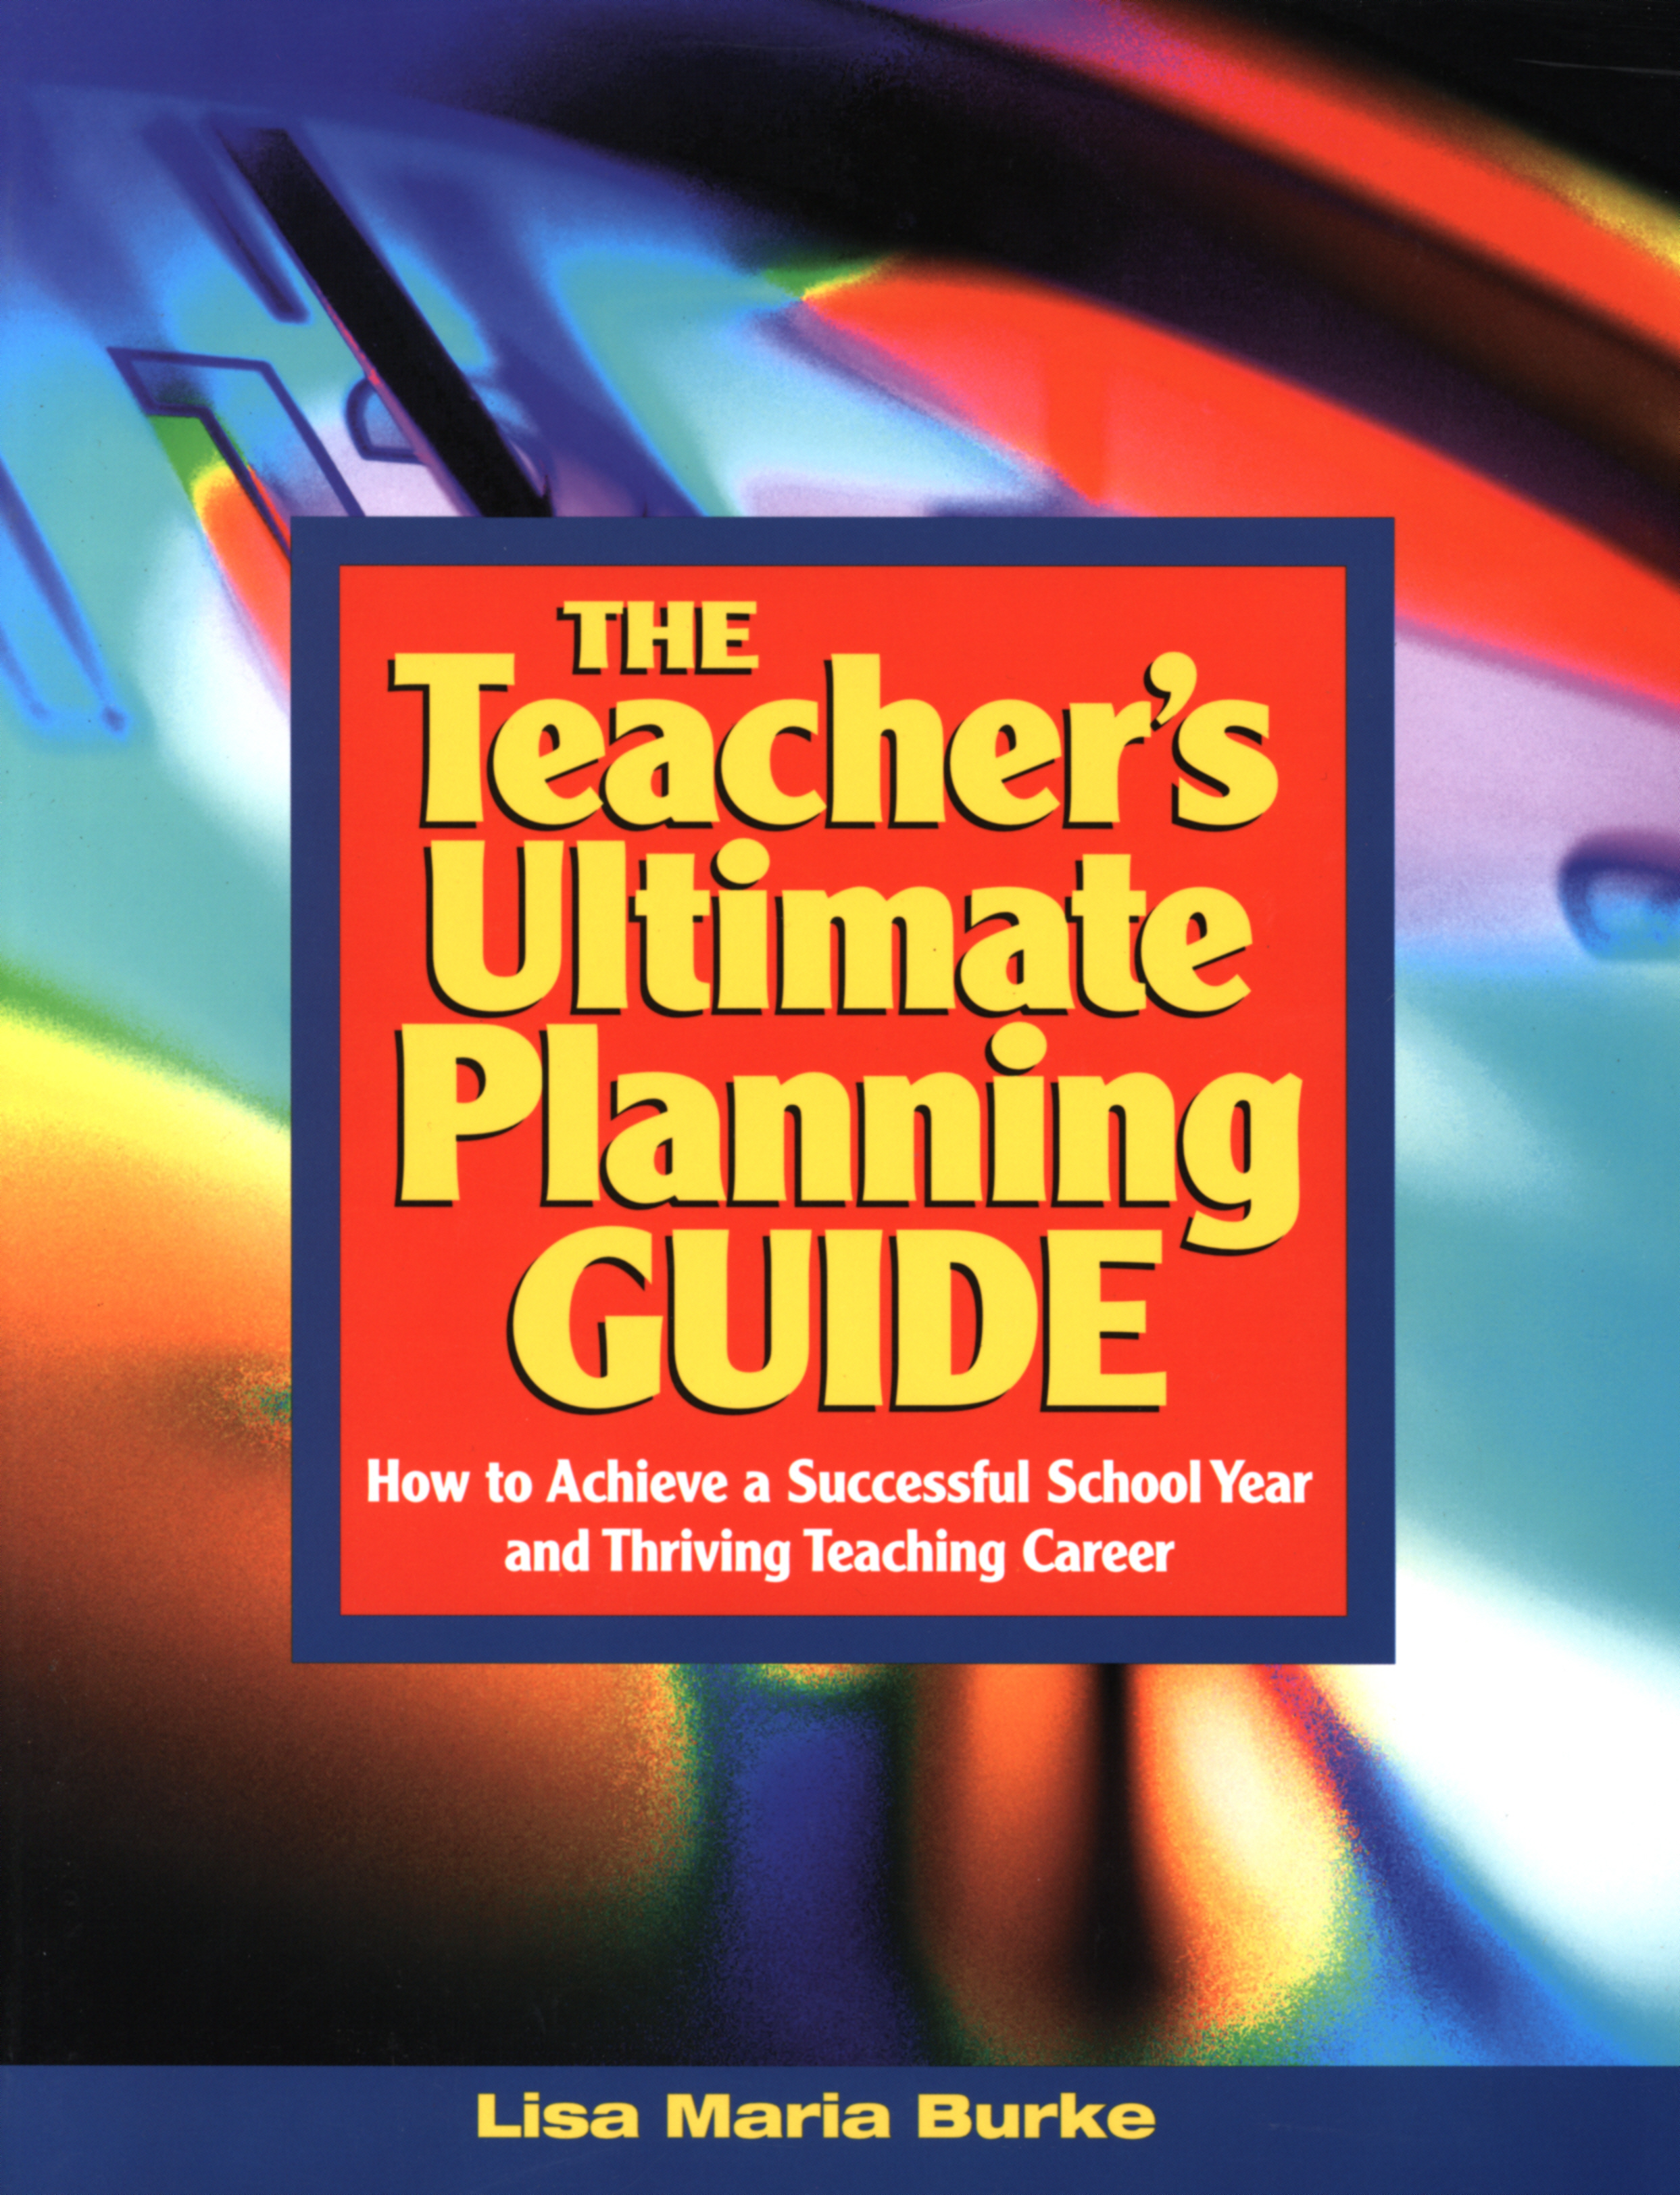 The Teacher's Ultimate Planning Guide